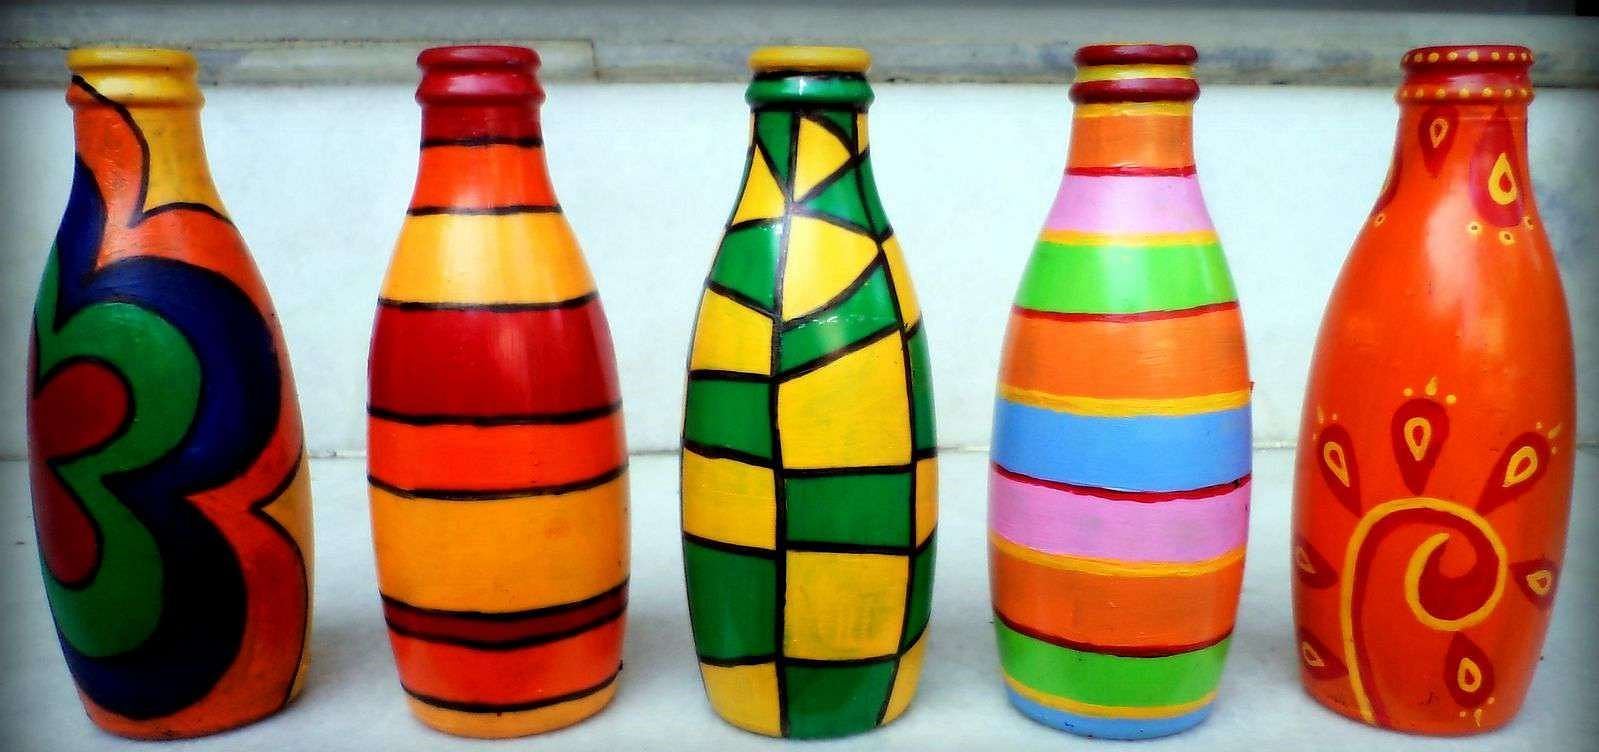 decorative-bottle-art-designs